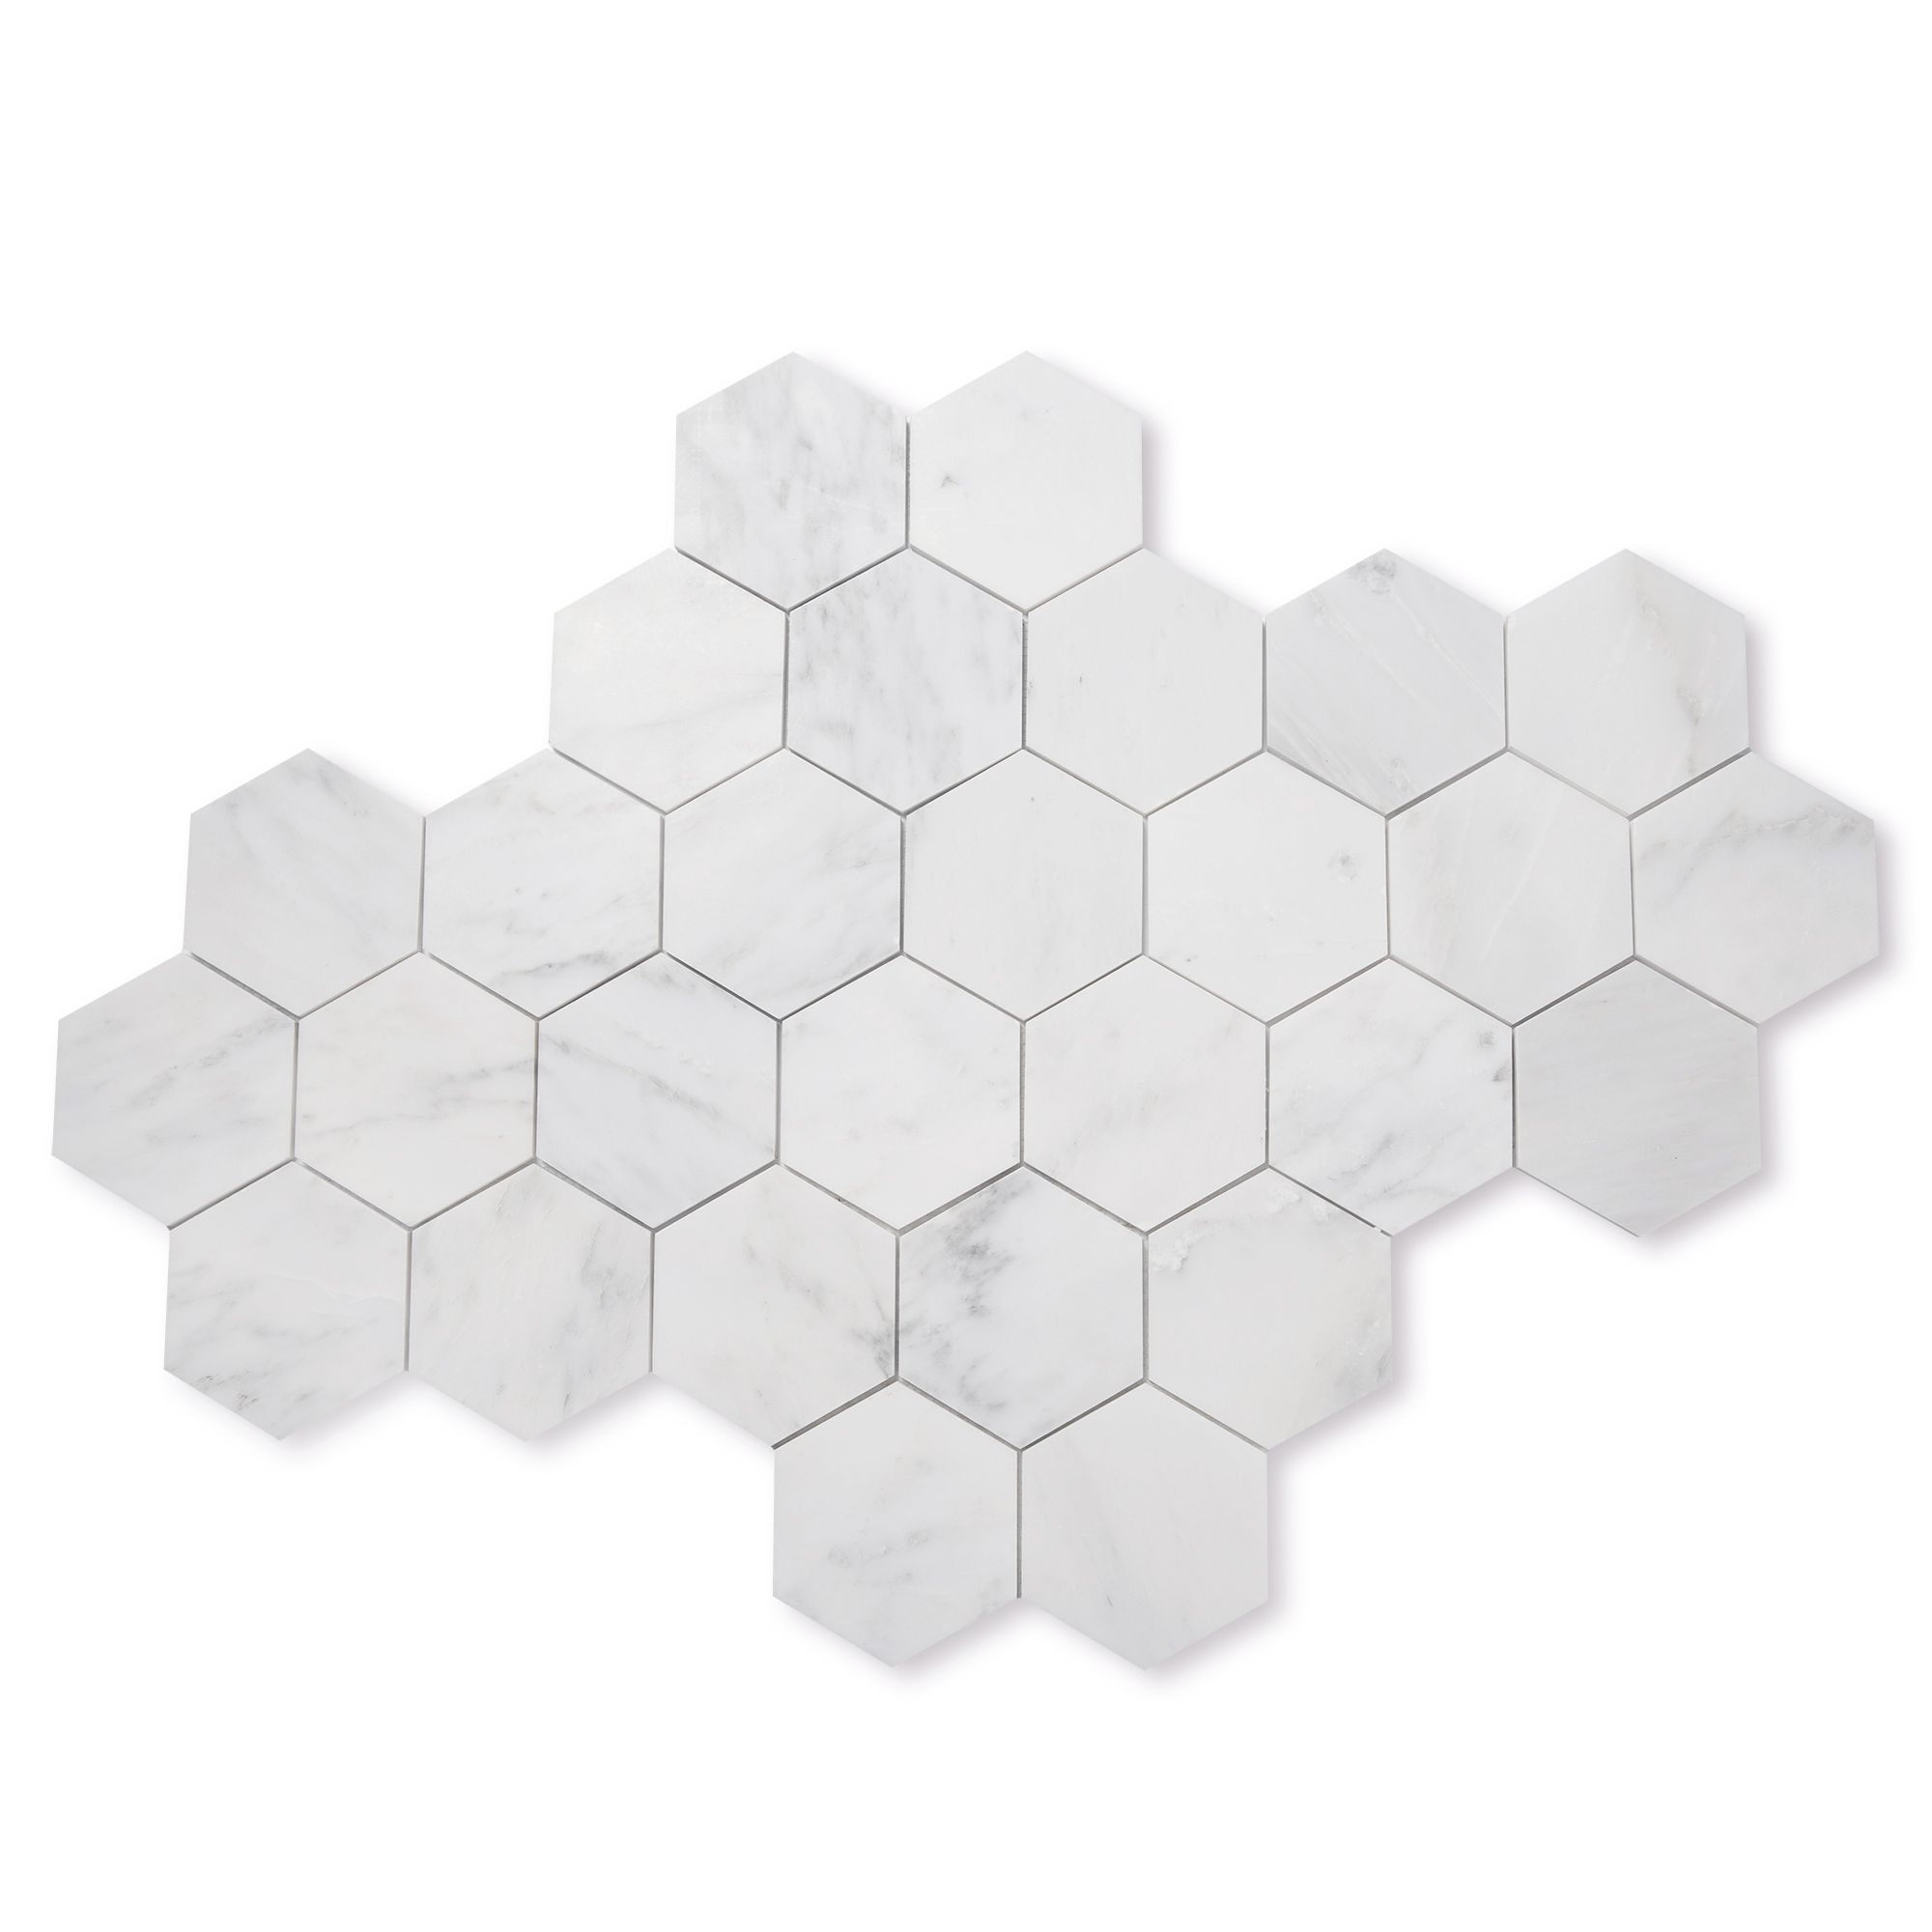 Shop All Tile Casablanca Marble 5 Hexagon Instagram See More Images On Instagram Casablanca Carrara Marble Honed 5 In 2020 Hexagonal Mosaic Hexagon Marble Tile